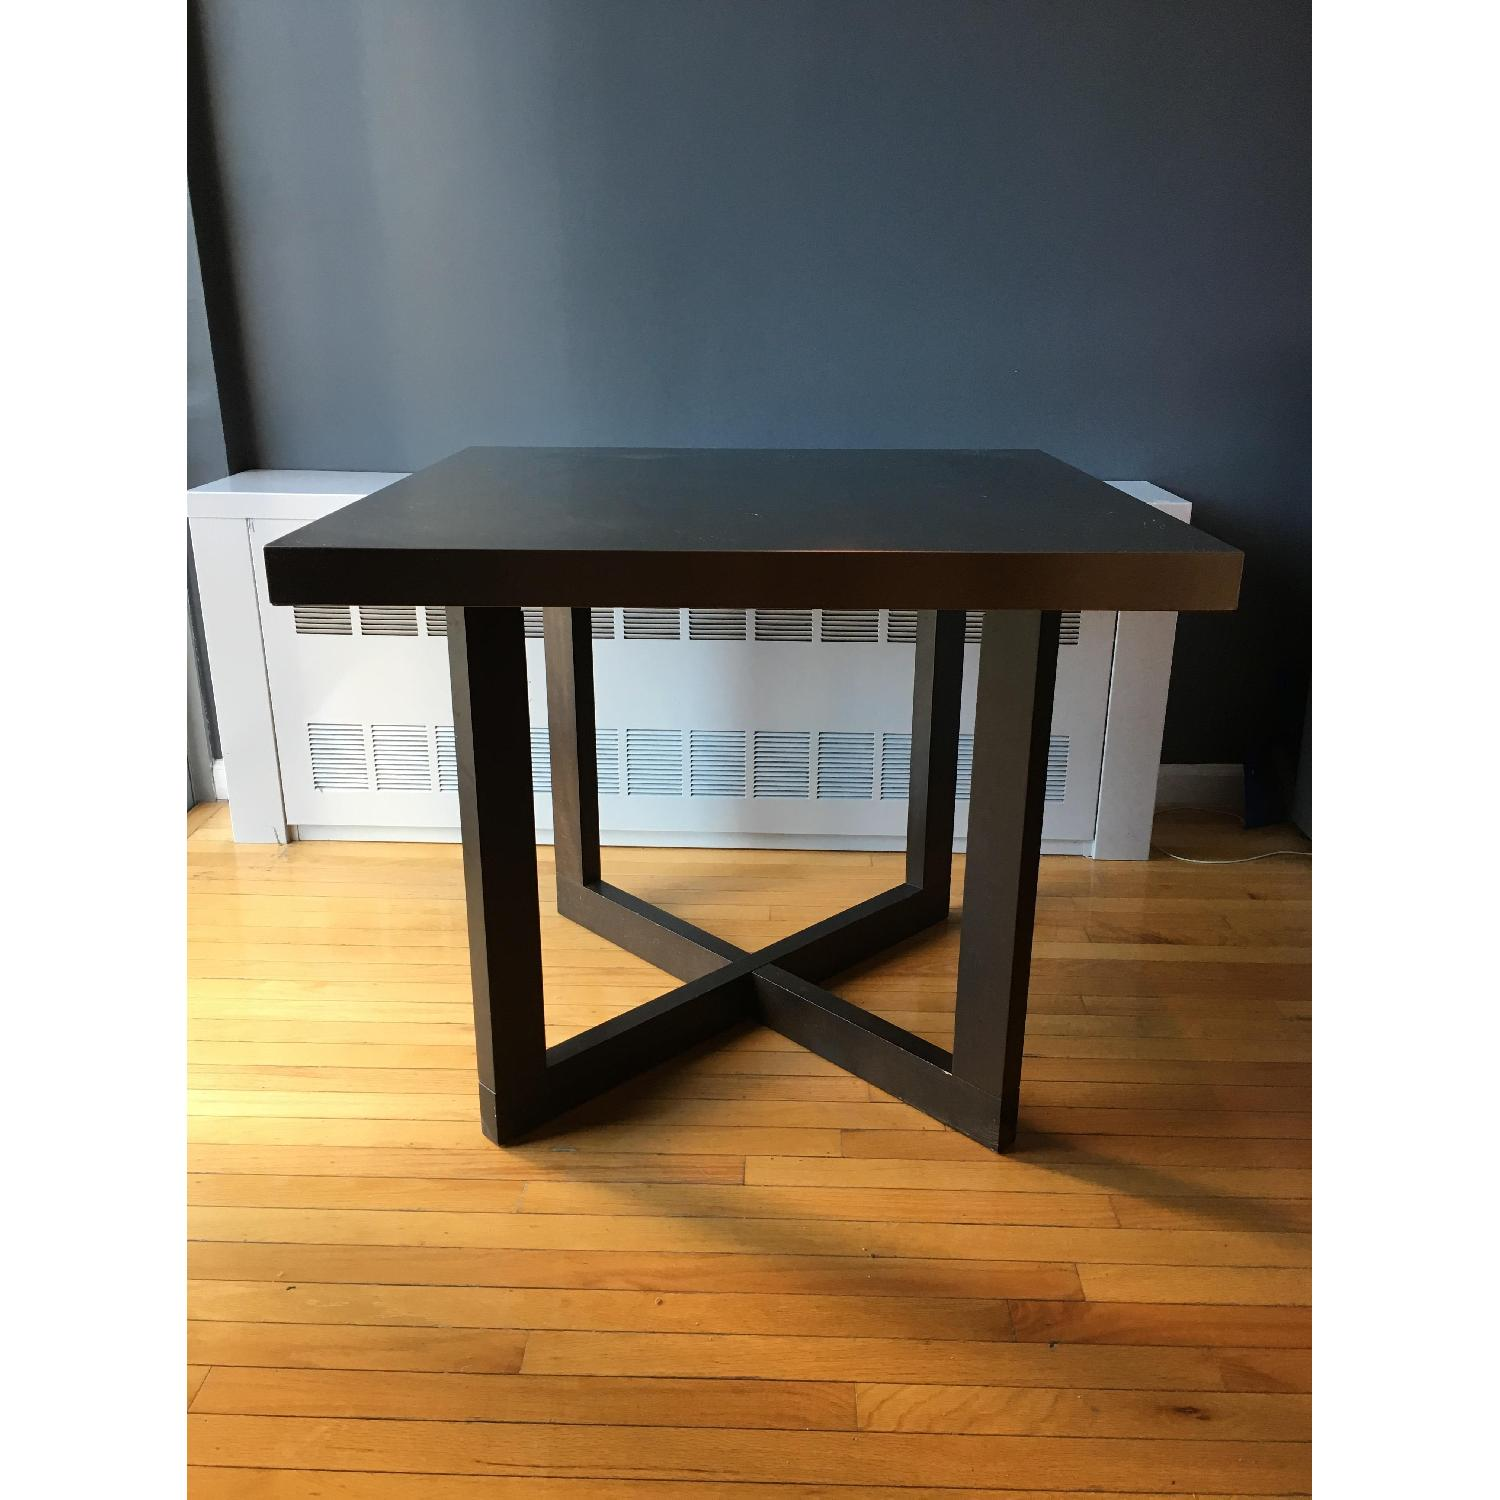 West Elm Solid Wood Table w/ Stainless Steel Top - image-2